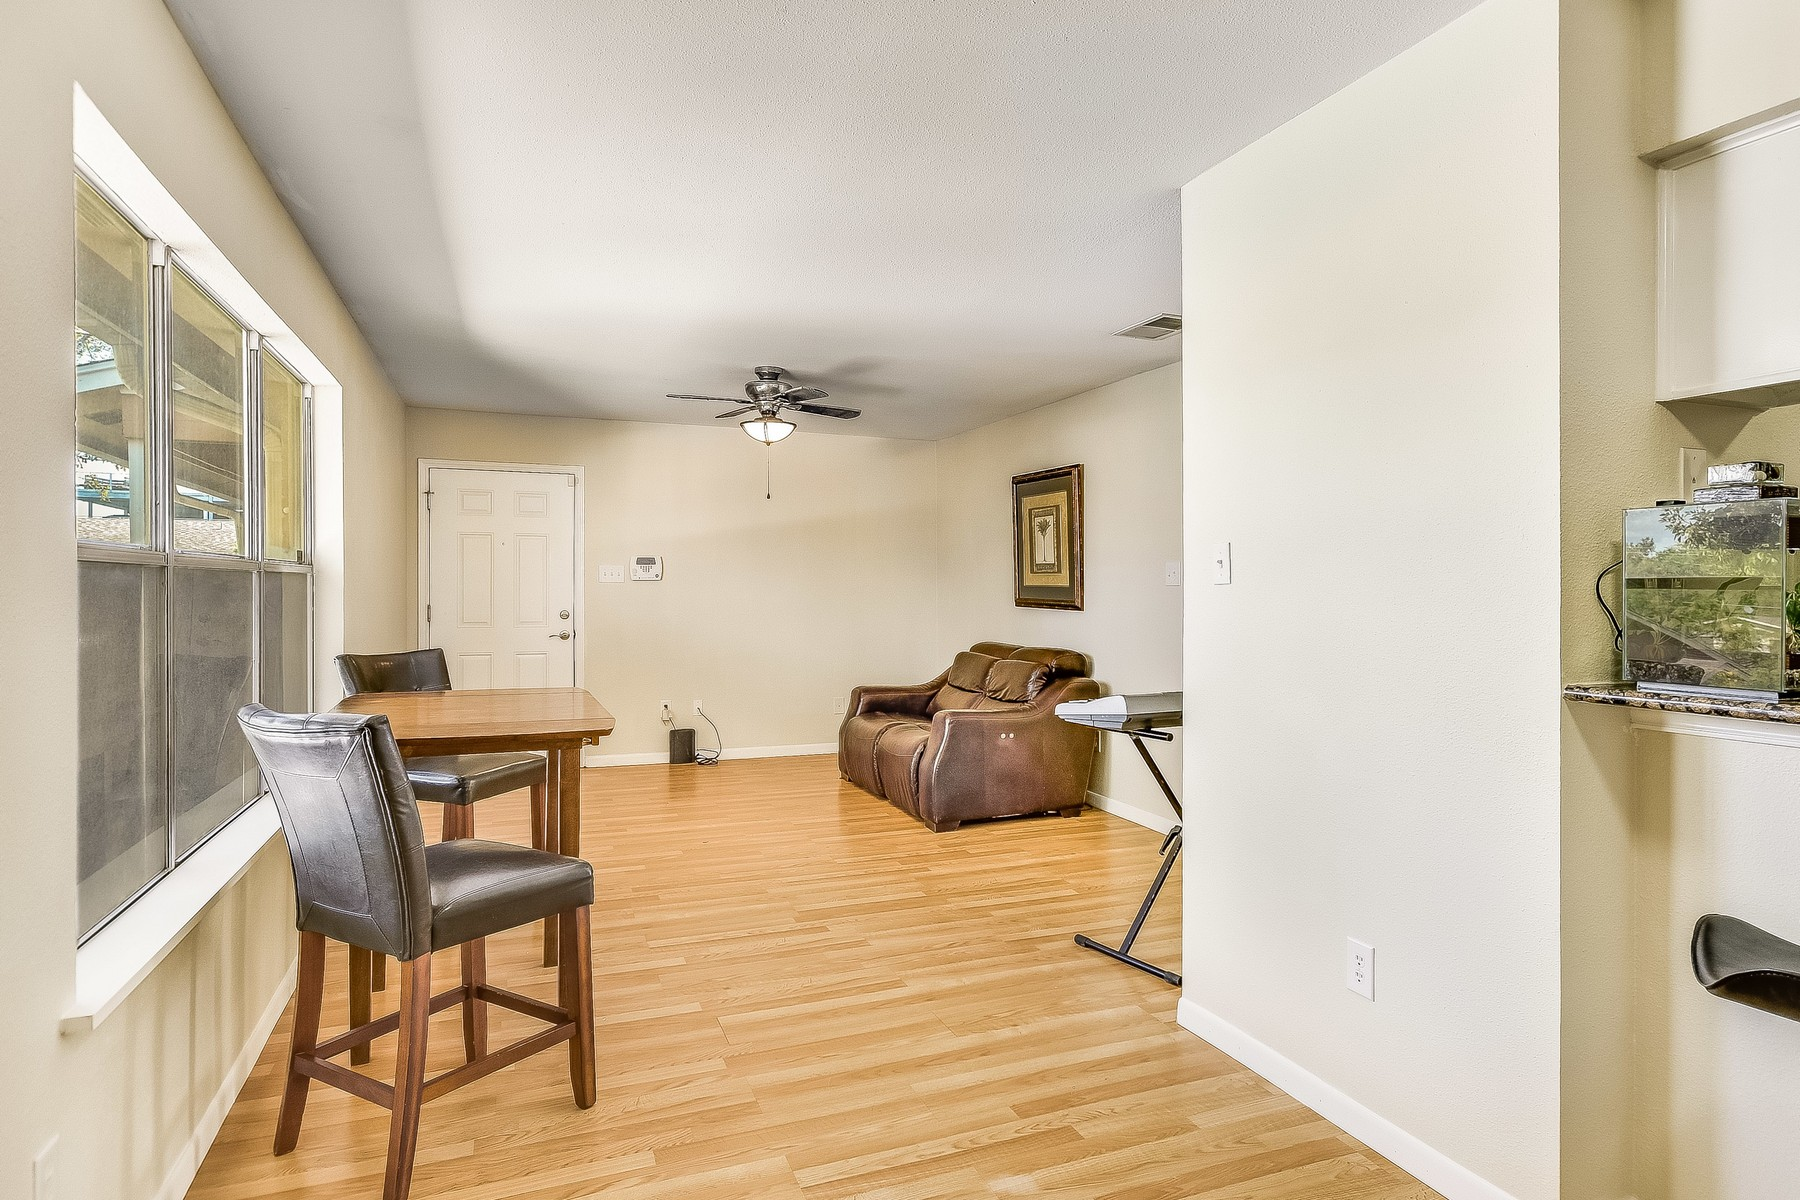 Additional photo for property listing at Amazing Condo in the Heart of North Shoal Creek 2450 Ashdale Dr 215 Austin, Texas 78757 United States